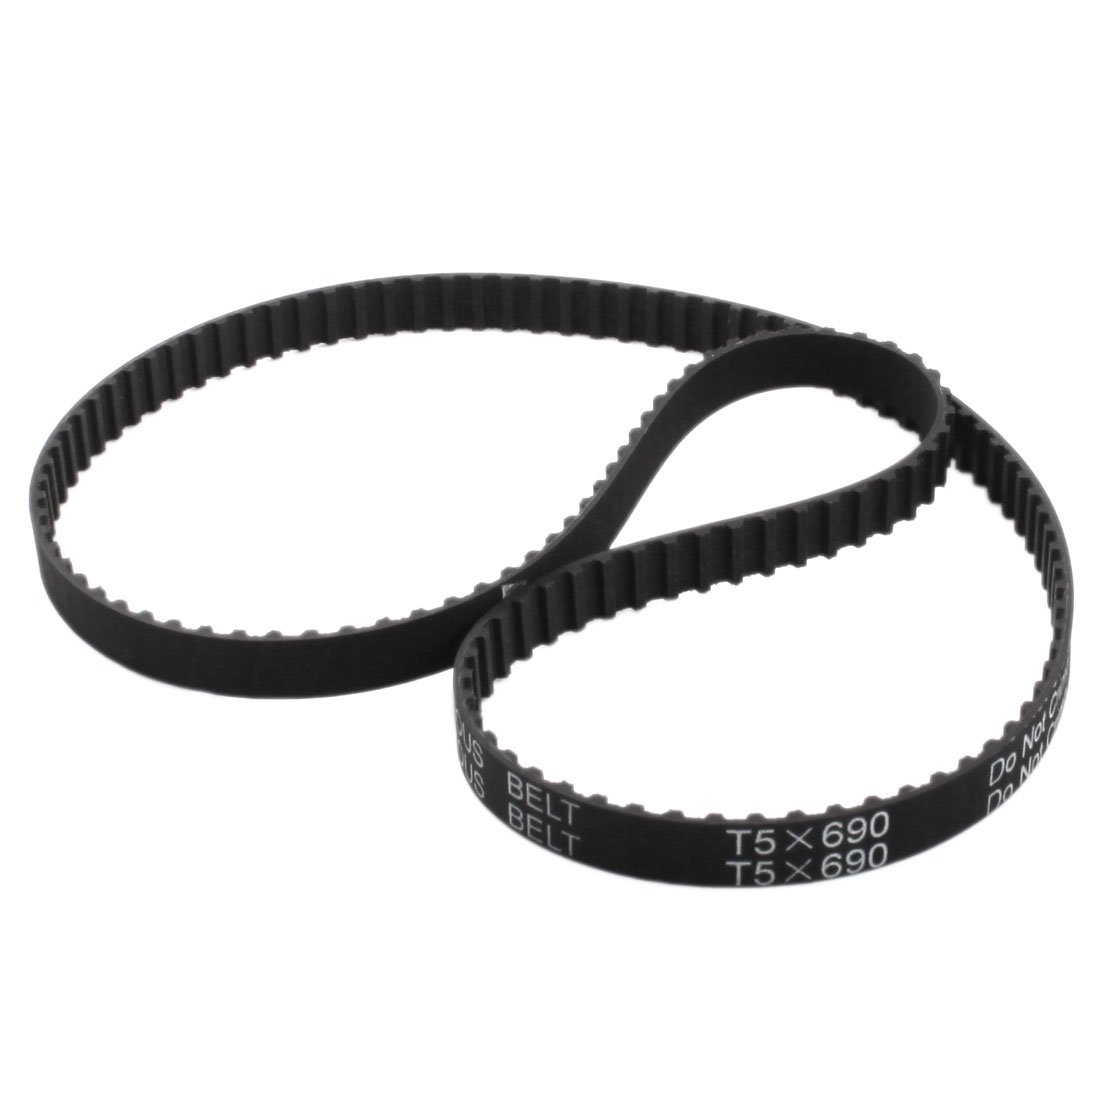 T5x690 138-Tooth 10mm Width Single Side Black Rubber Groove Industrial CNC Machine 3D Printer Synchronous Timing Belt 690mm Girth